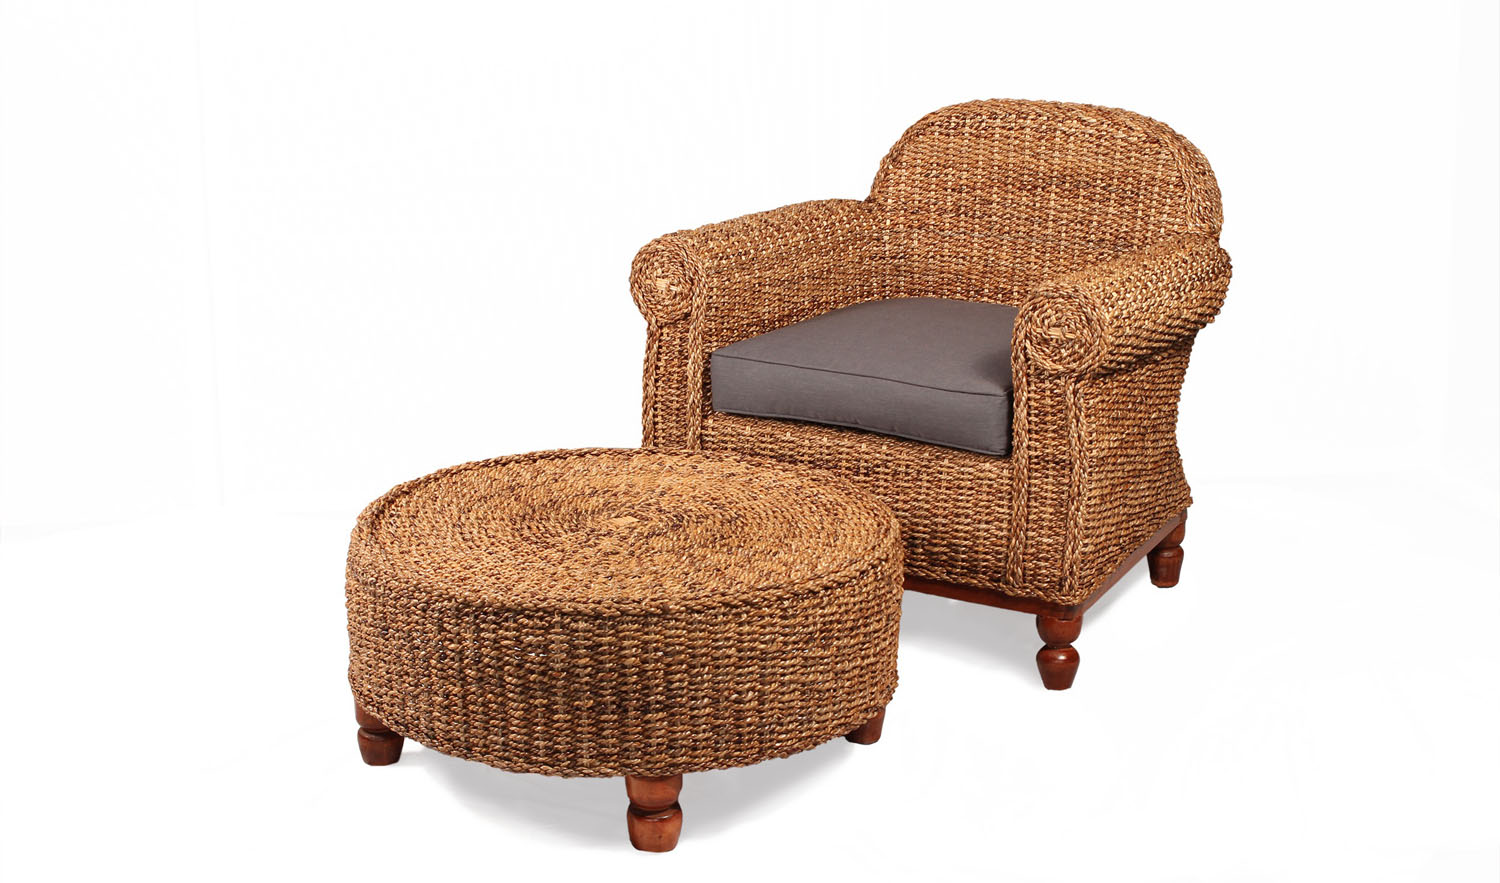 Copy of Rattan Conservatory Chair in Natural Banana Leaf